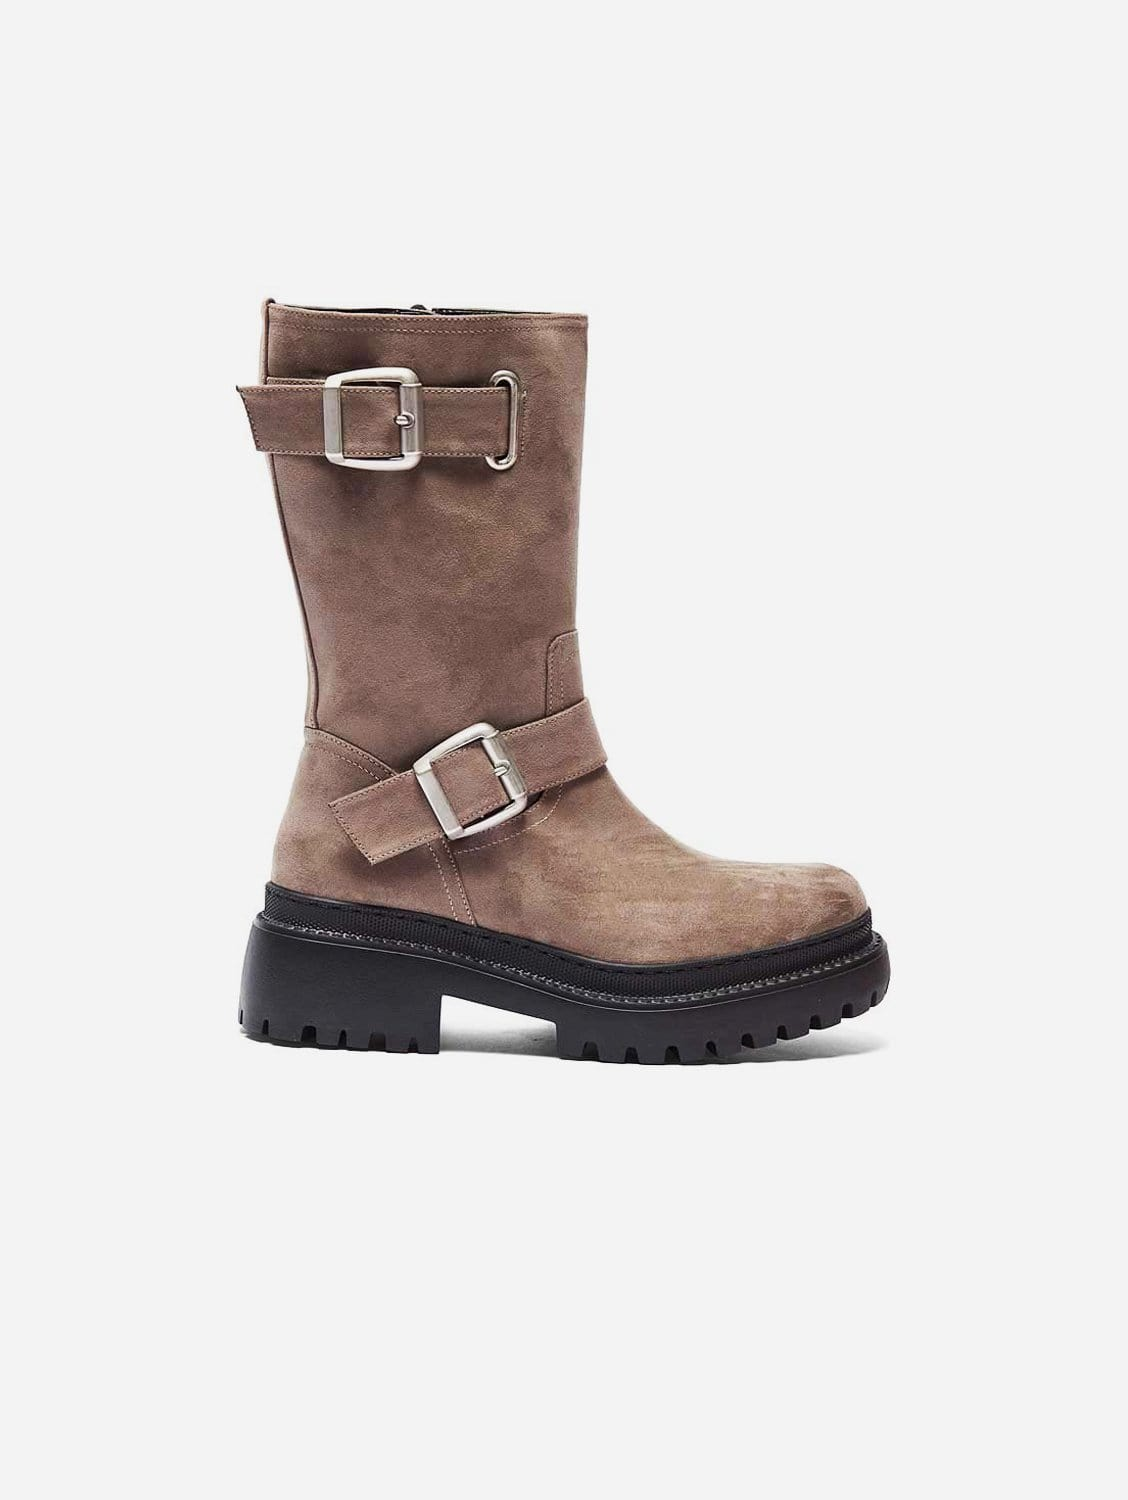 Lara Recycled Polyester Vegan Suede Biker Boots   Taupe